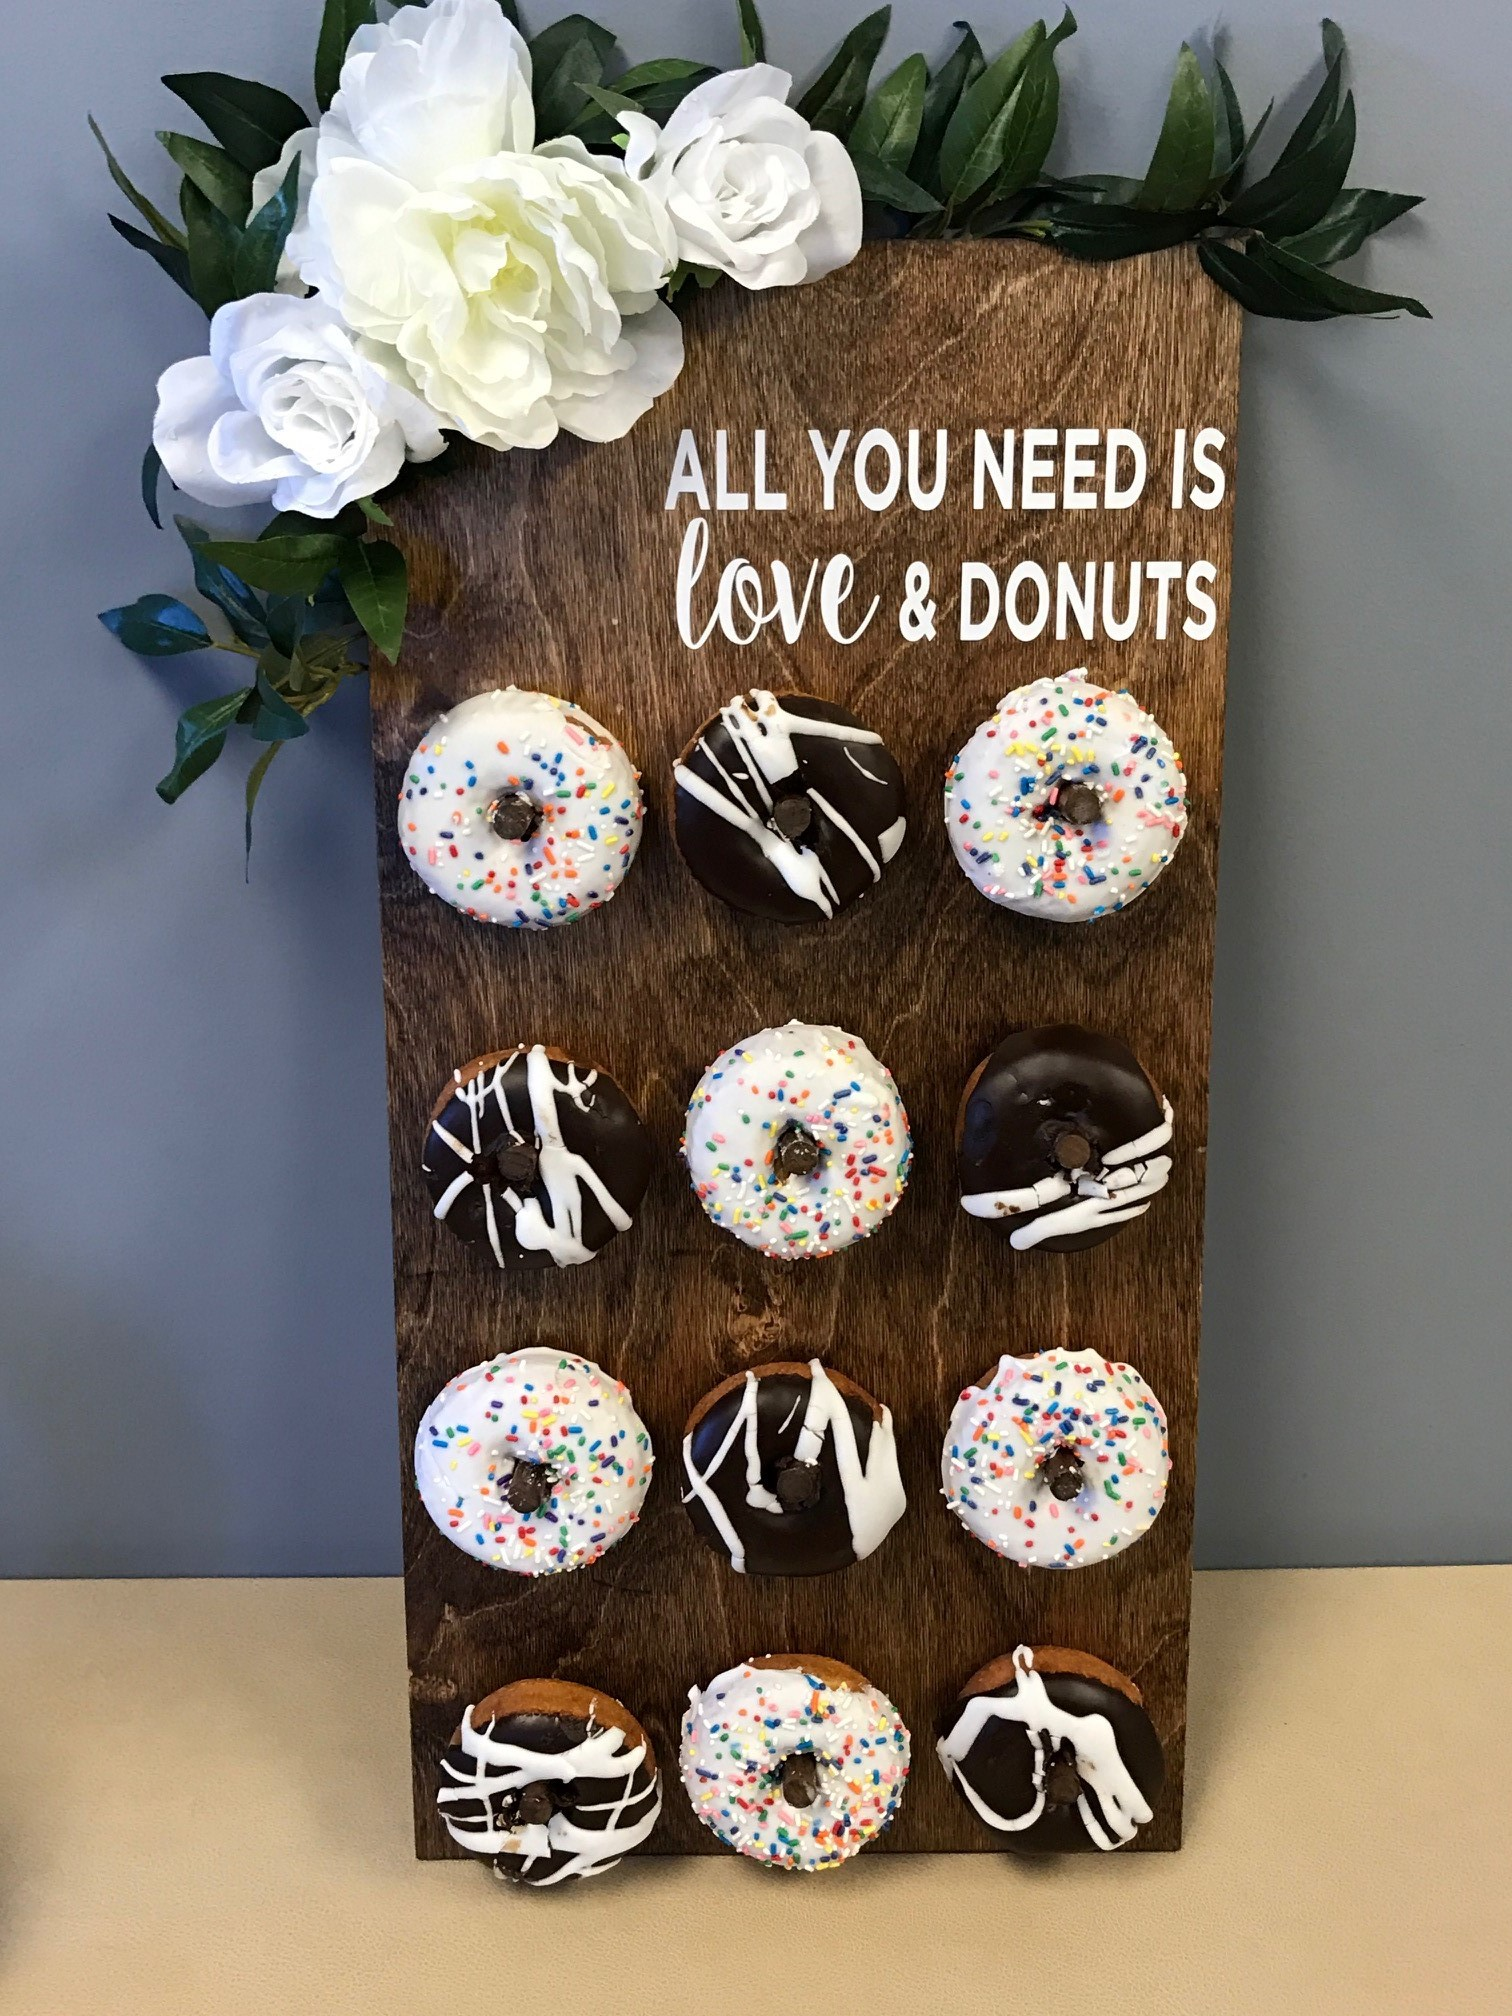 DIY Donut Board | All You Need is Love & Donuts